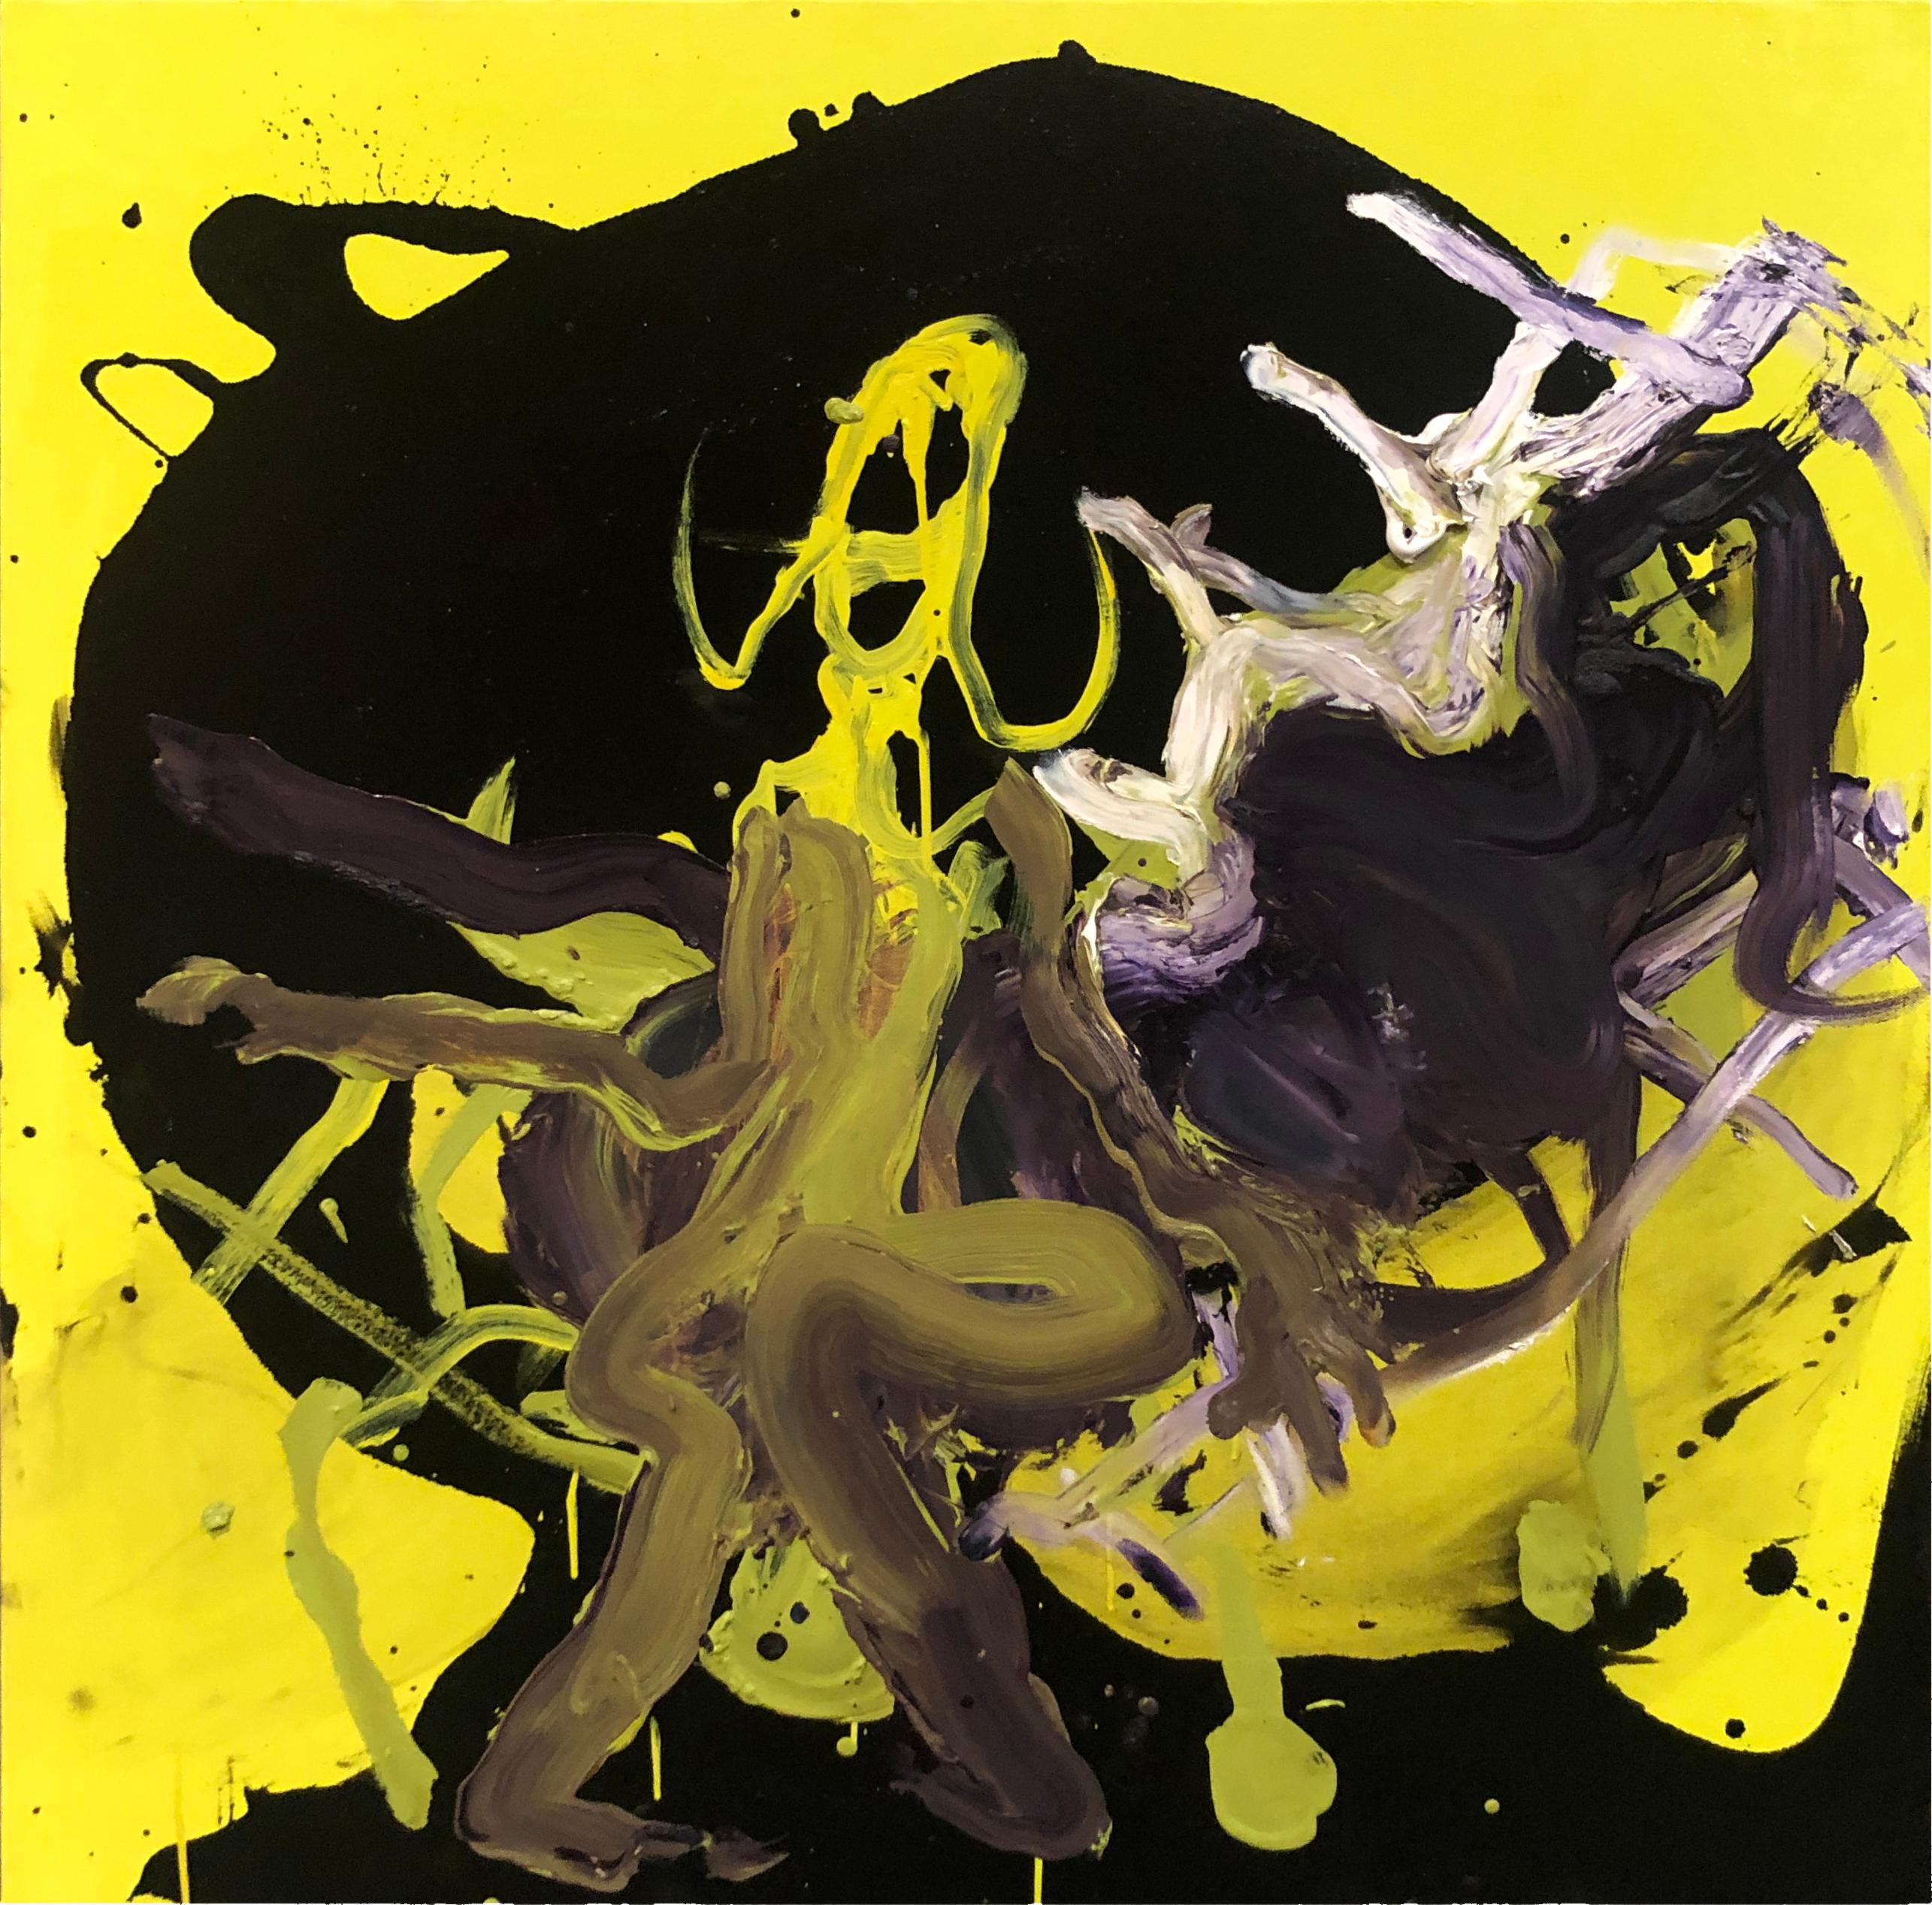 Figure - Original Abstract Oil Painting, Bright Yellow and Black with Figures